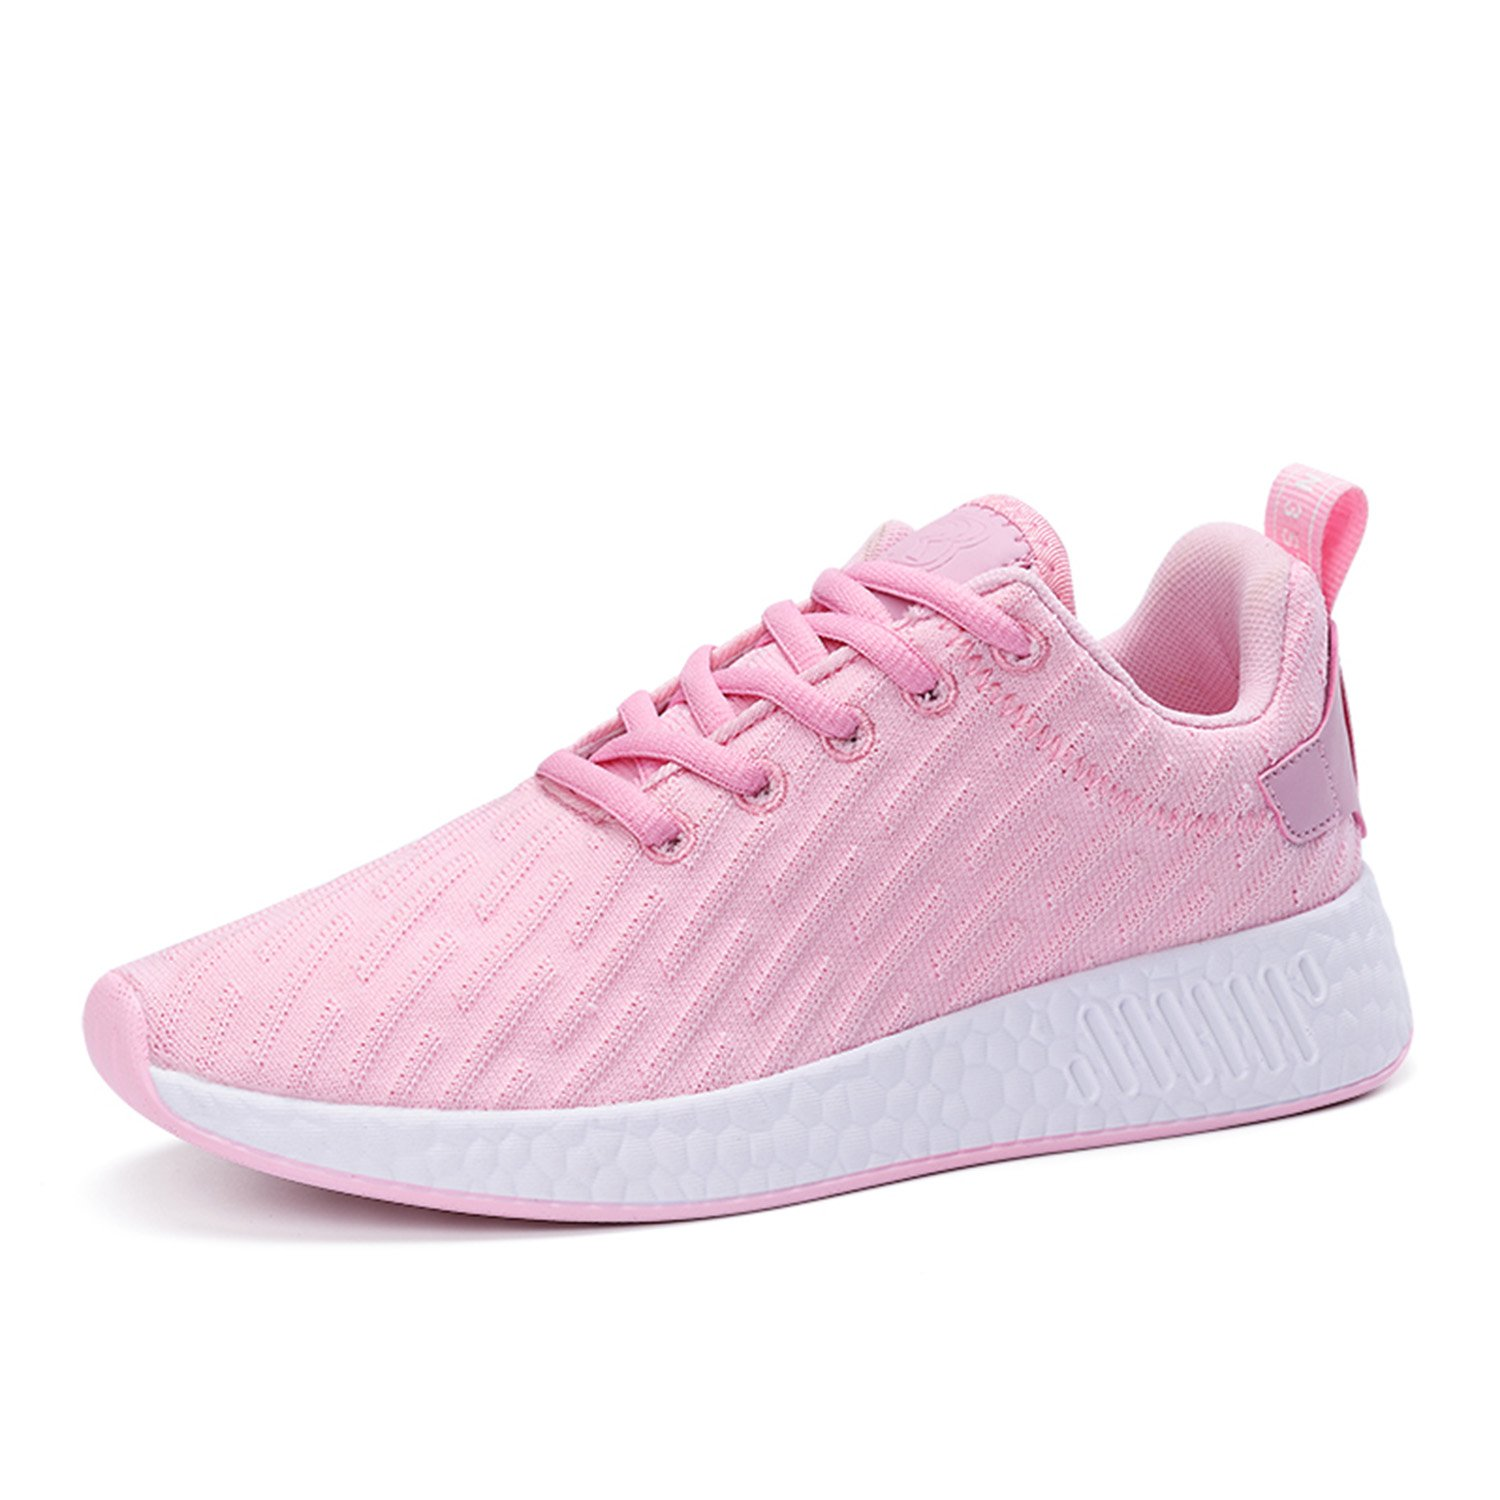 Mens Womens Fashion Sneakers Classic Breathable Lightweight Outdoor Gym Running Athletic Walking Shoes